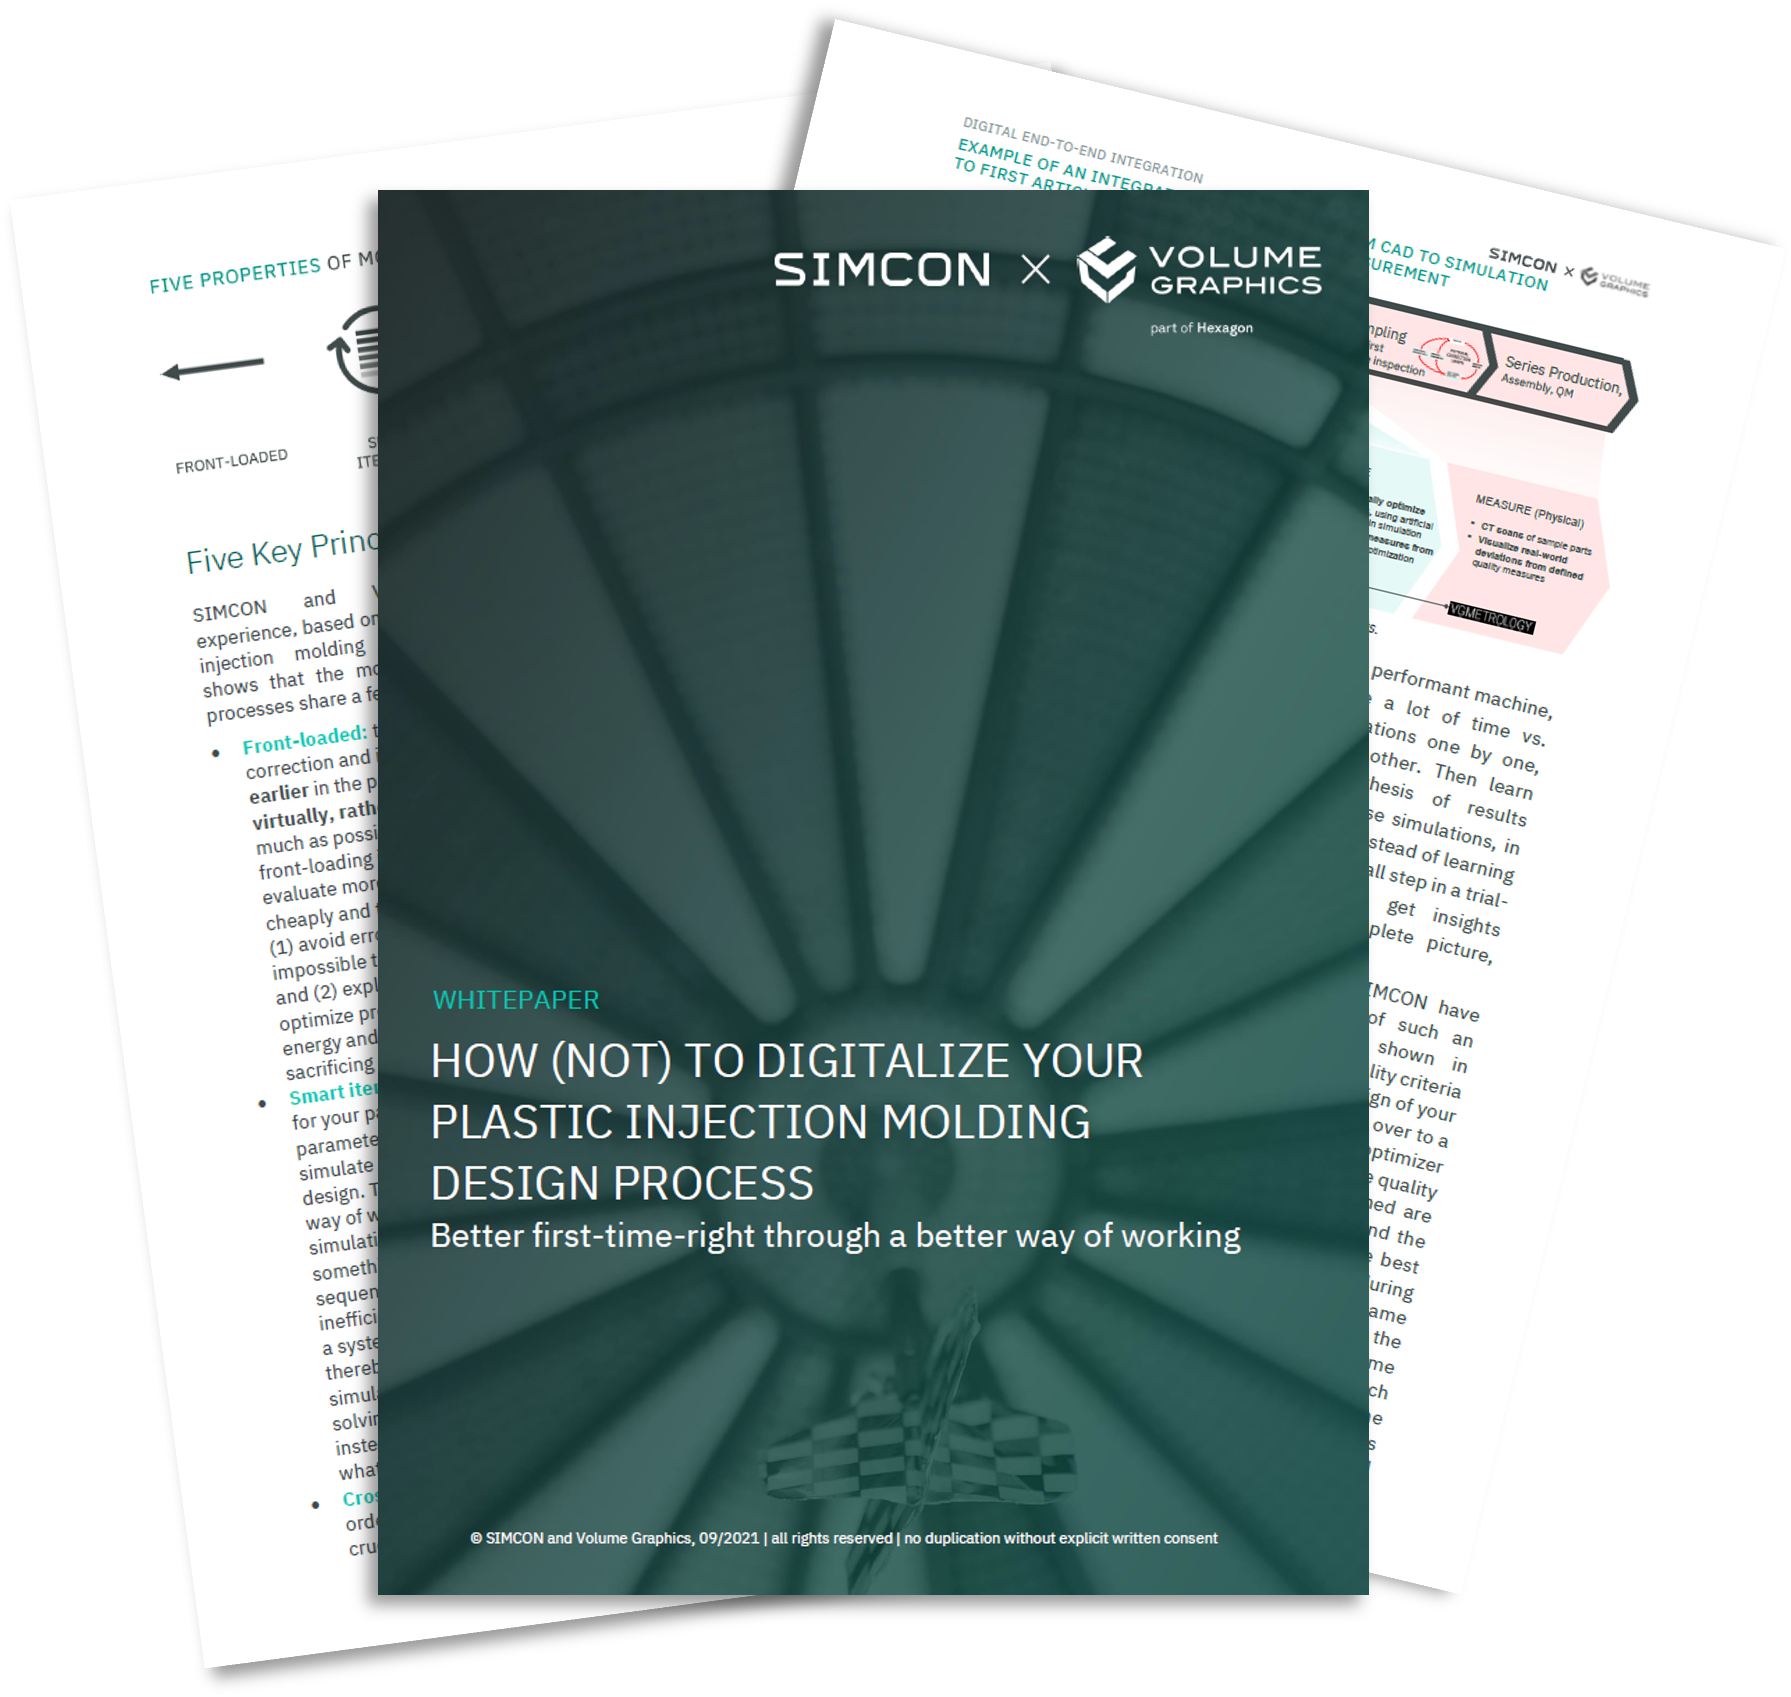 Whitepaper: how (not) to digitalize your plastic injection molding design process